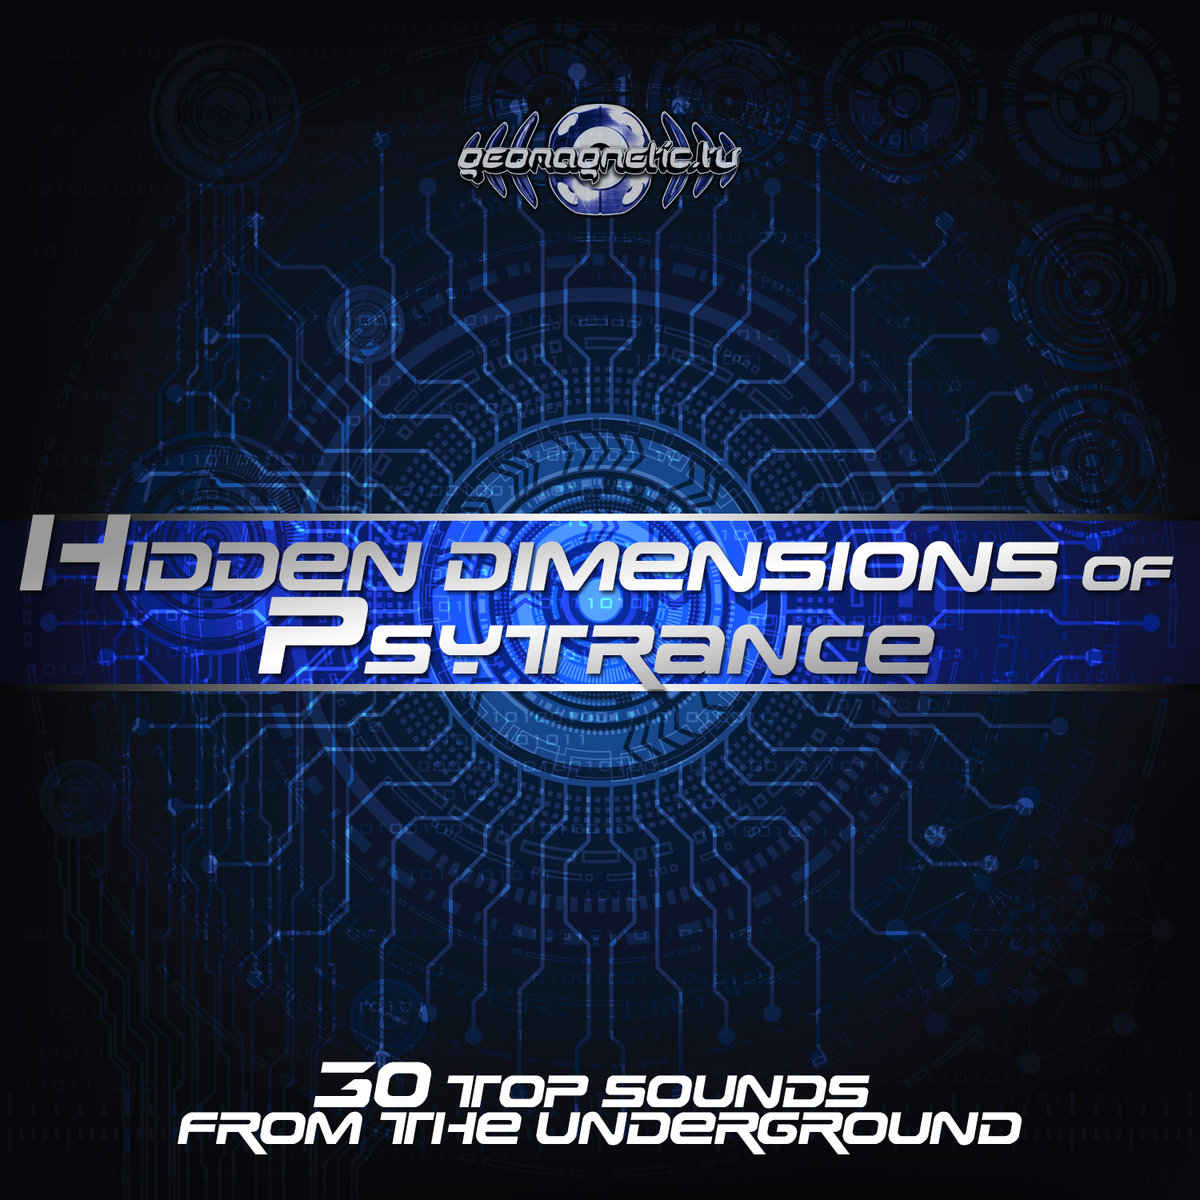 Rishi - Capturing Lightning Bolts @ 'Various Artists - Hidden Dimensions of Psytrance (30 Top Sounds From The Underground)' album (electronic, goa)